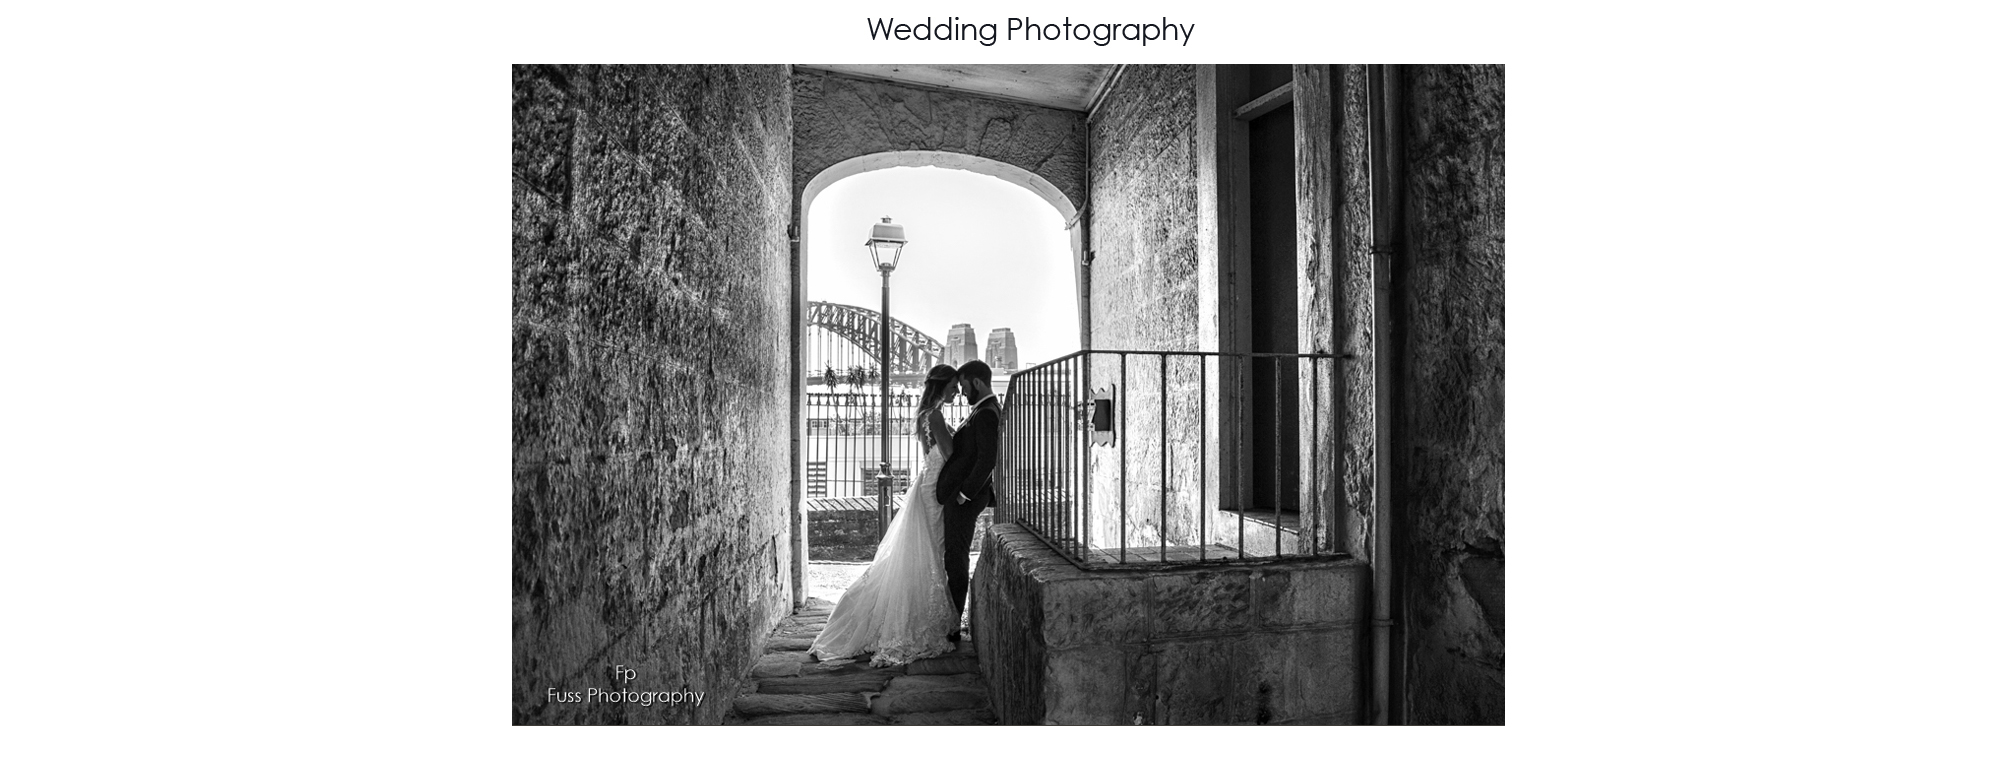 Sydney-Wedding-Photography-02